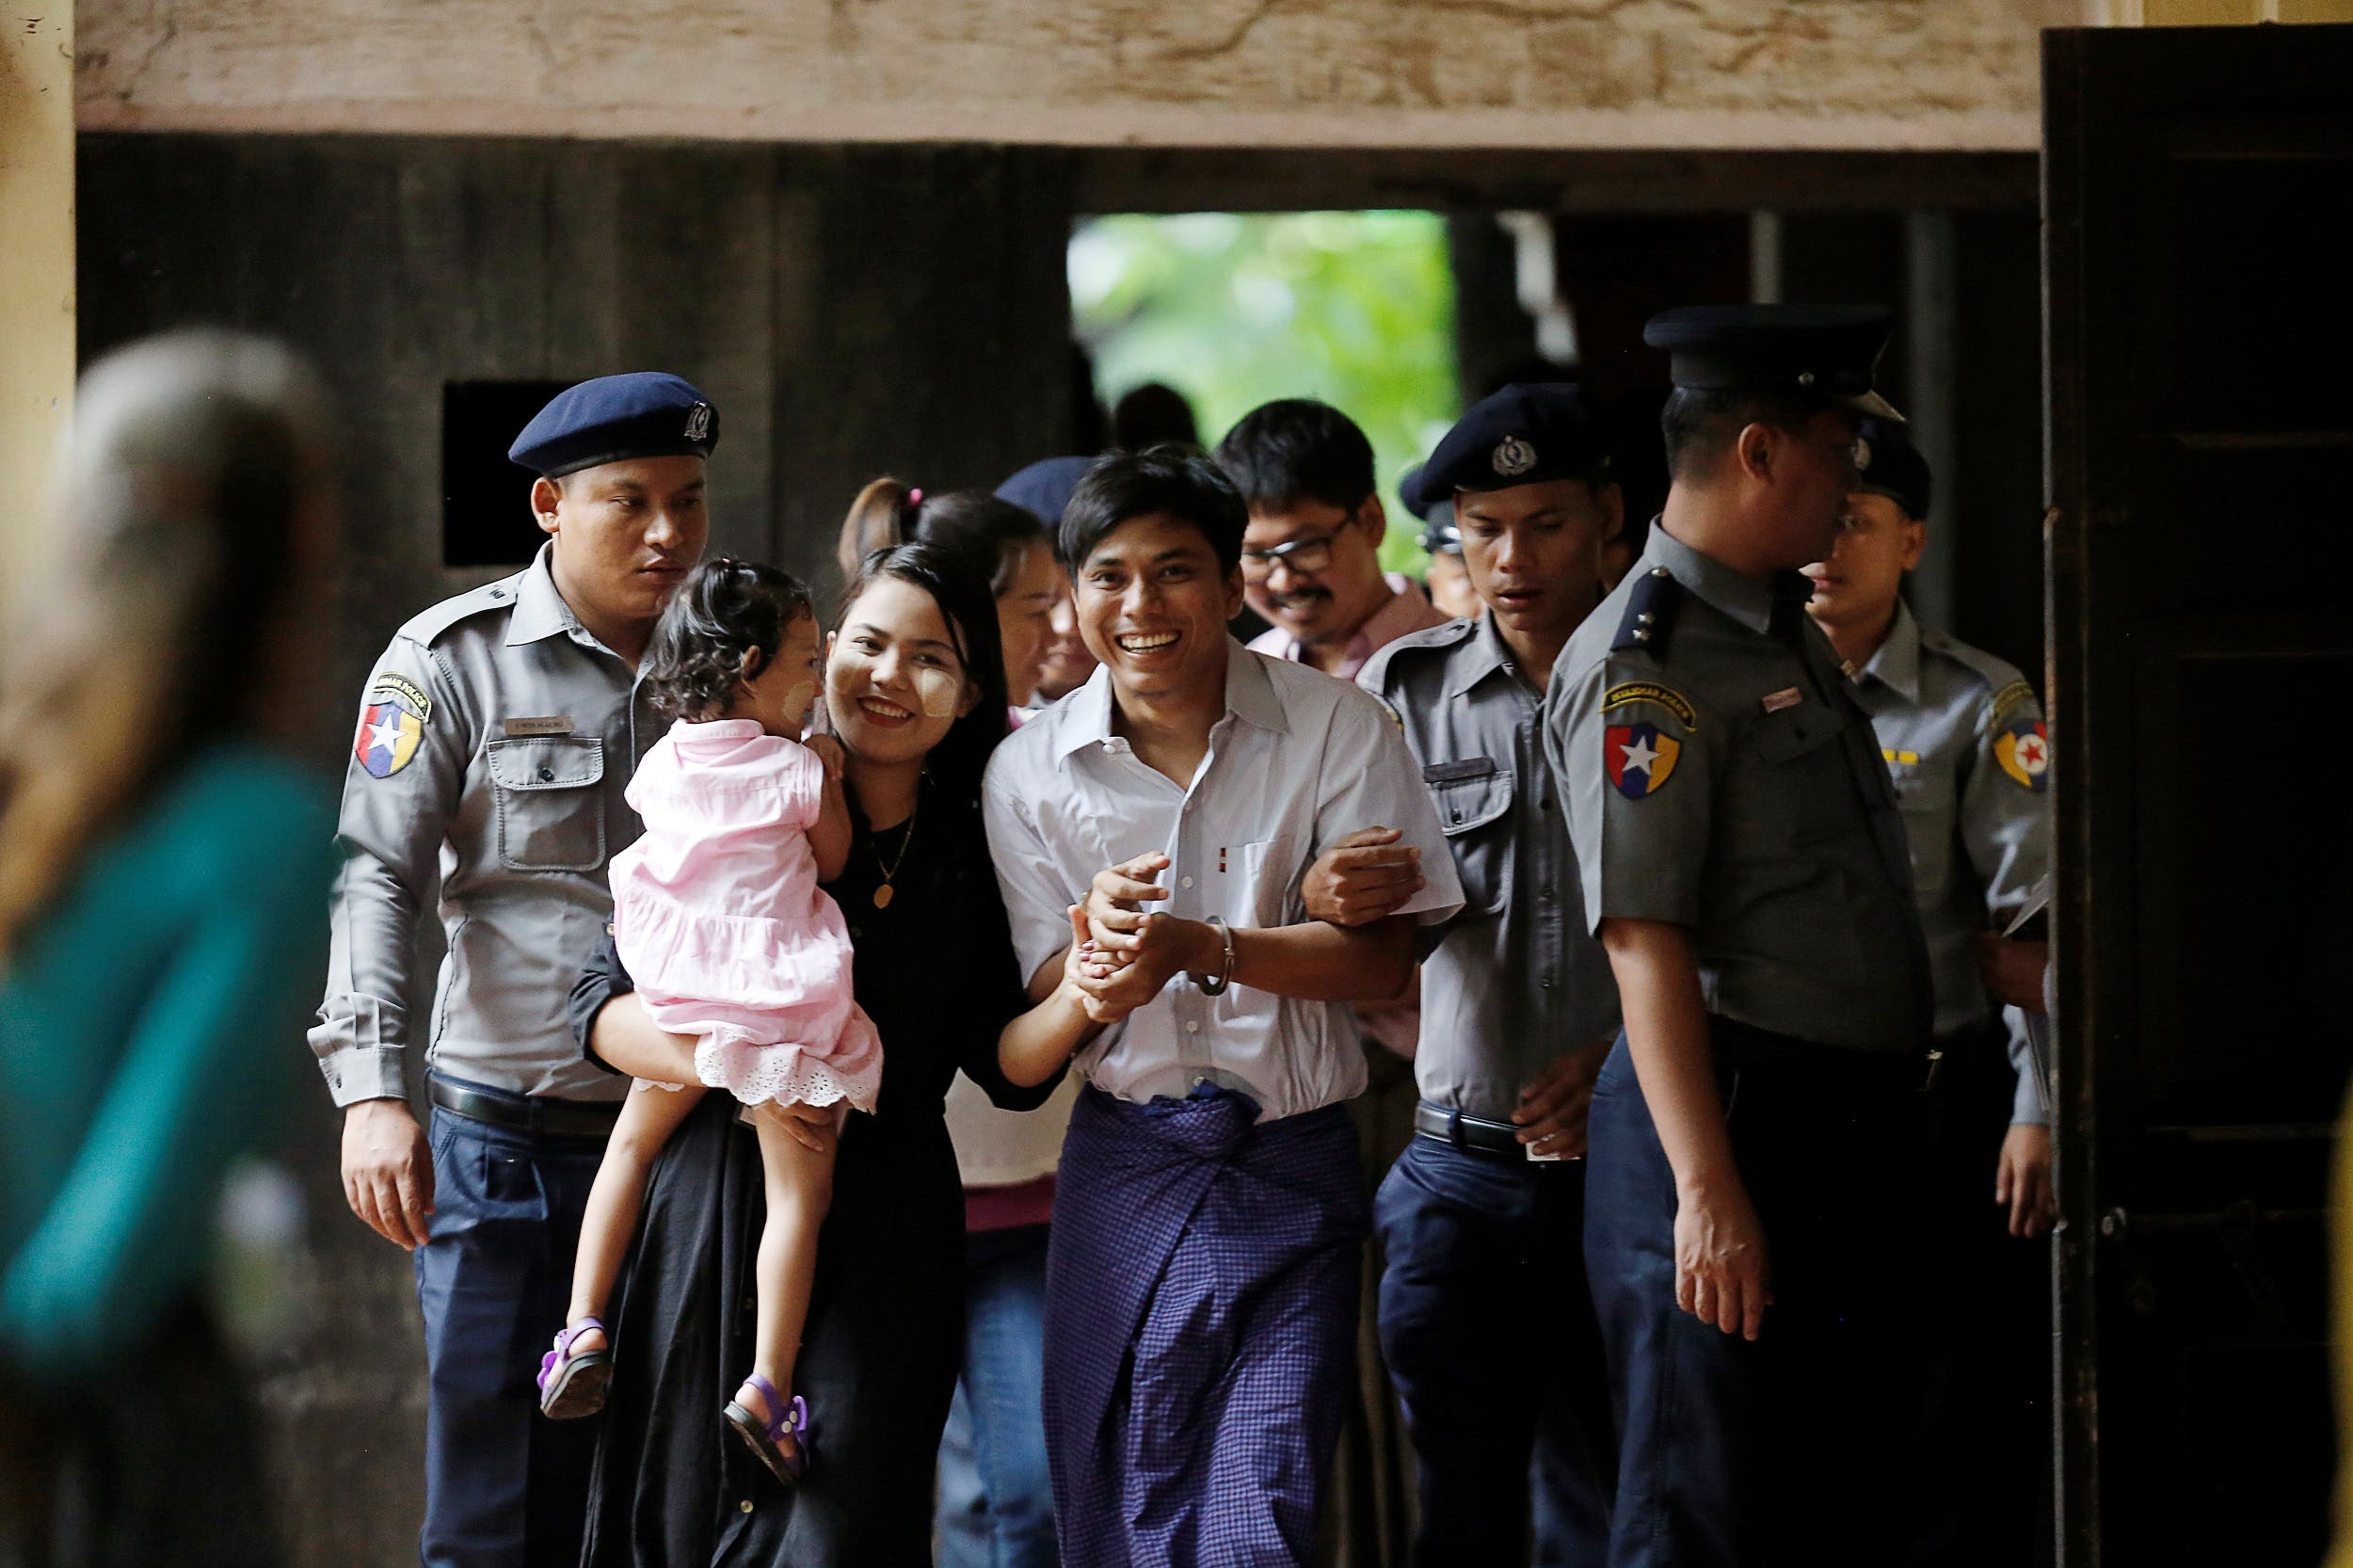 Detained Reuters journalist Kyaw Soe Oo arrives at Insein court in Yangon, Myanmar July 2, 2018. REUTERS